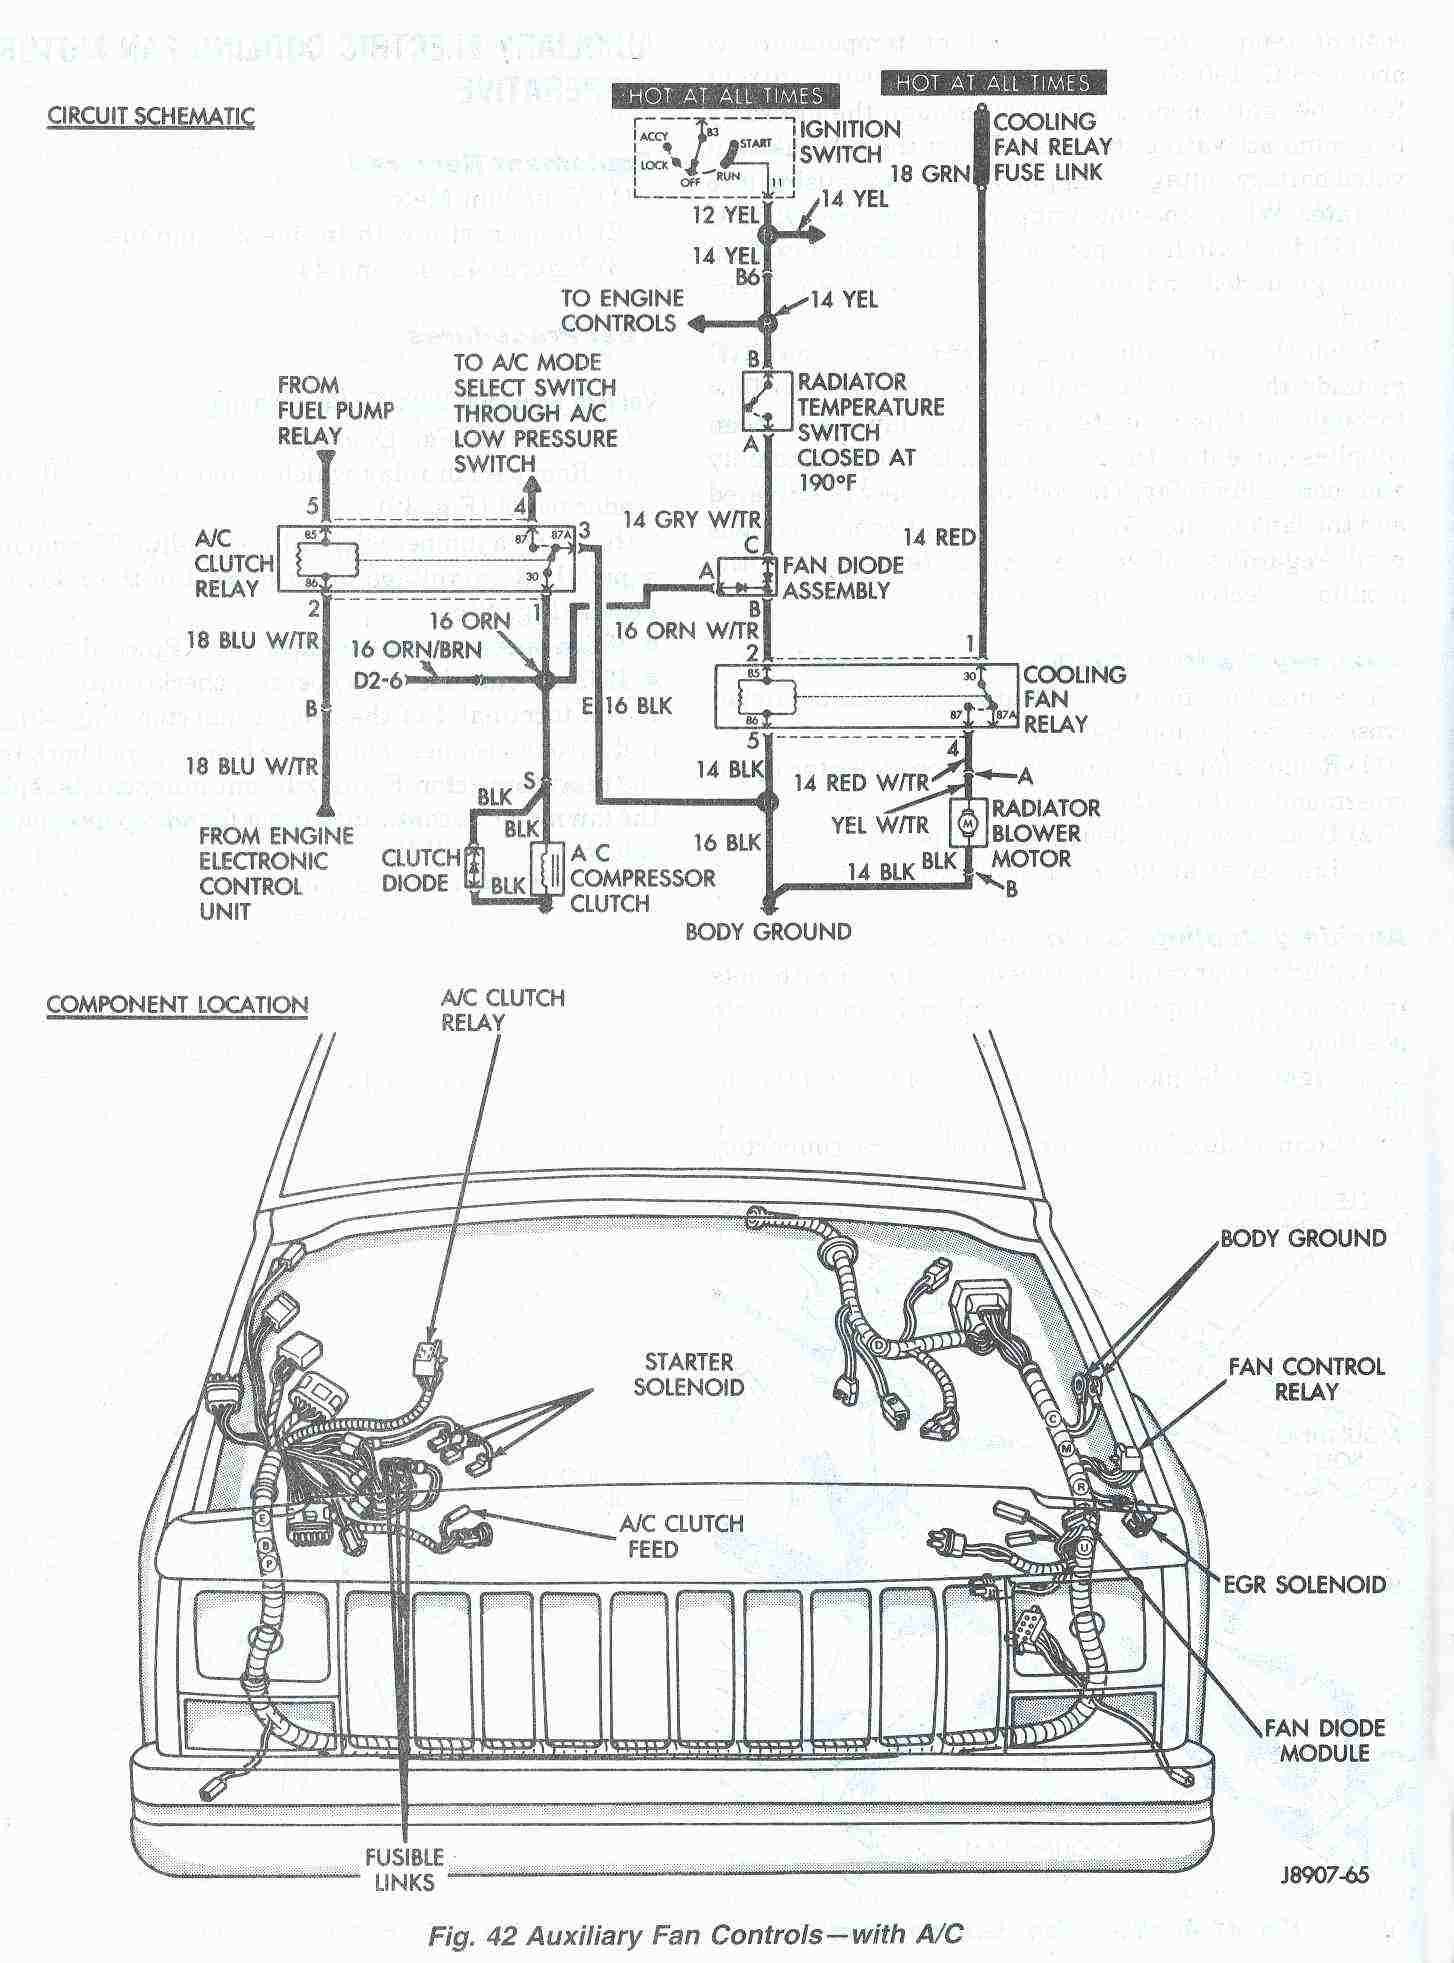 e8c83109bad6c41d377df8c1cb7a8dc4 at the asd relay if vole is not b16 check fuse 20 30 a good there 1996 jeep grand cherokee laredo wiring diagram at n-0.co